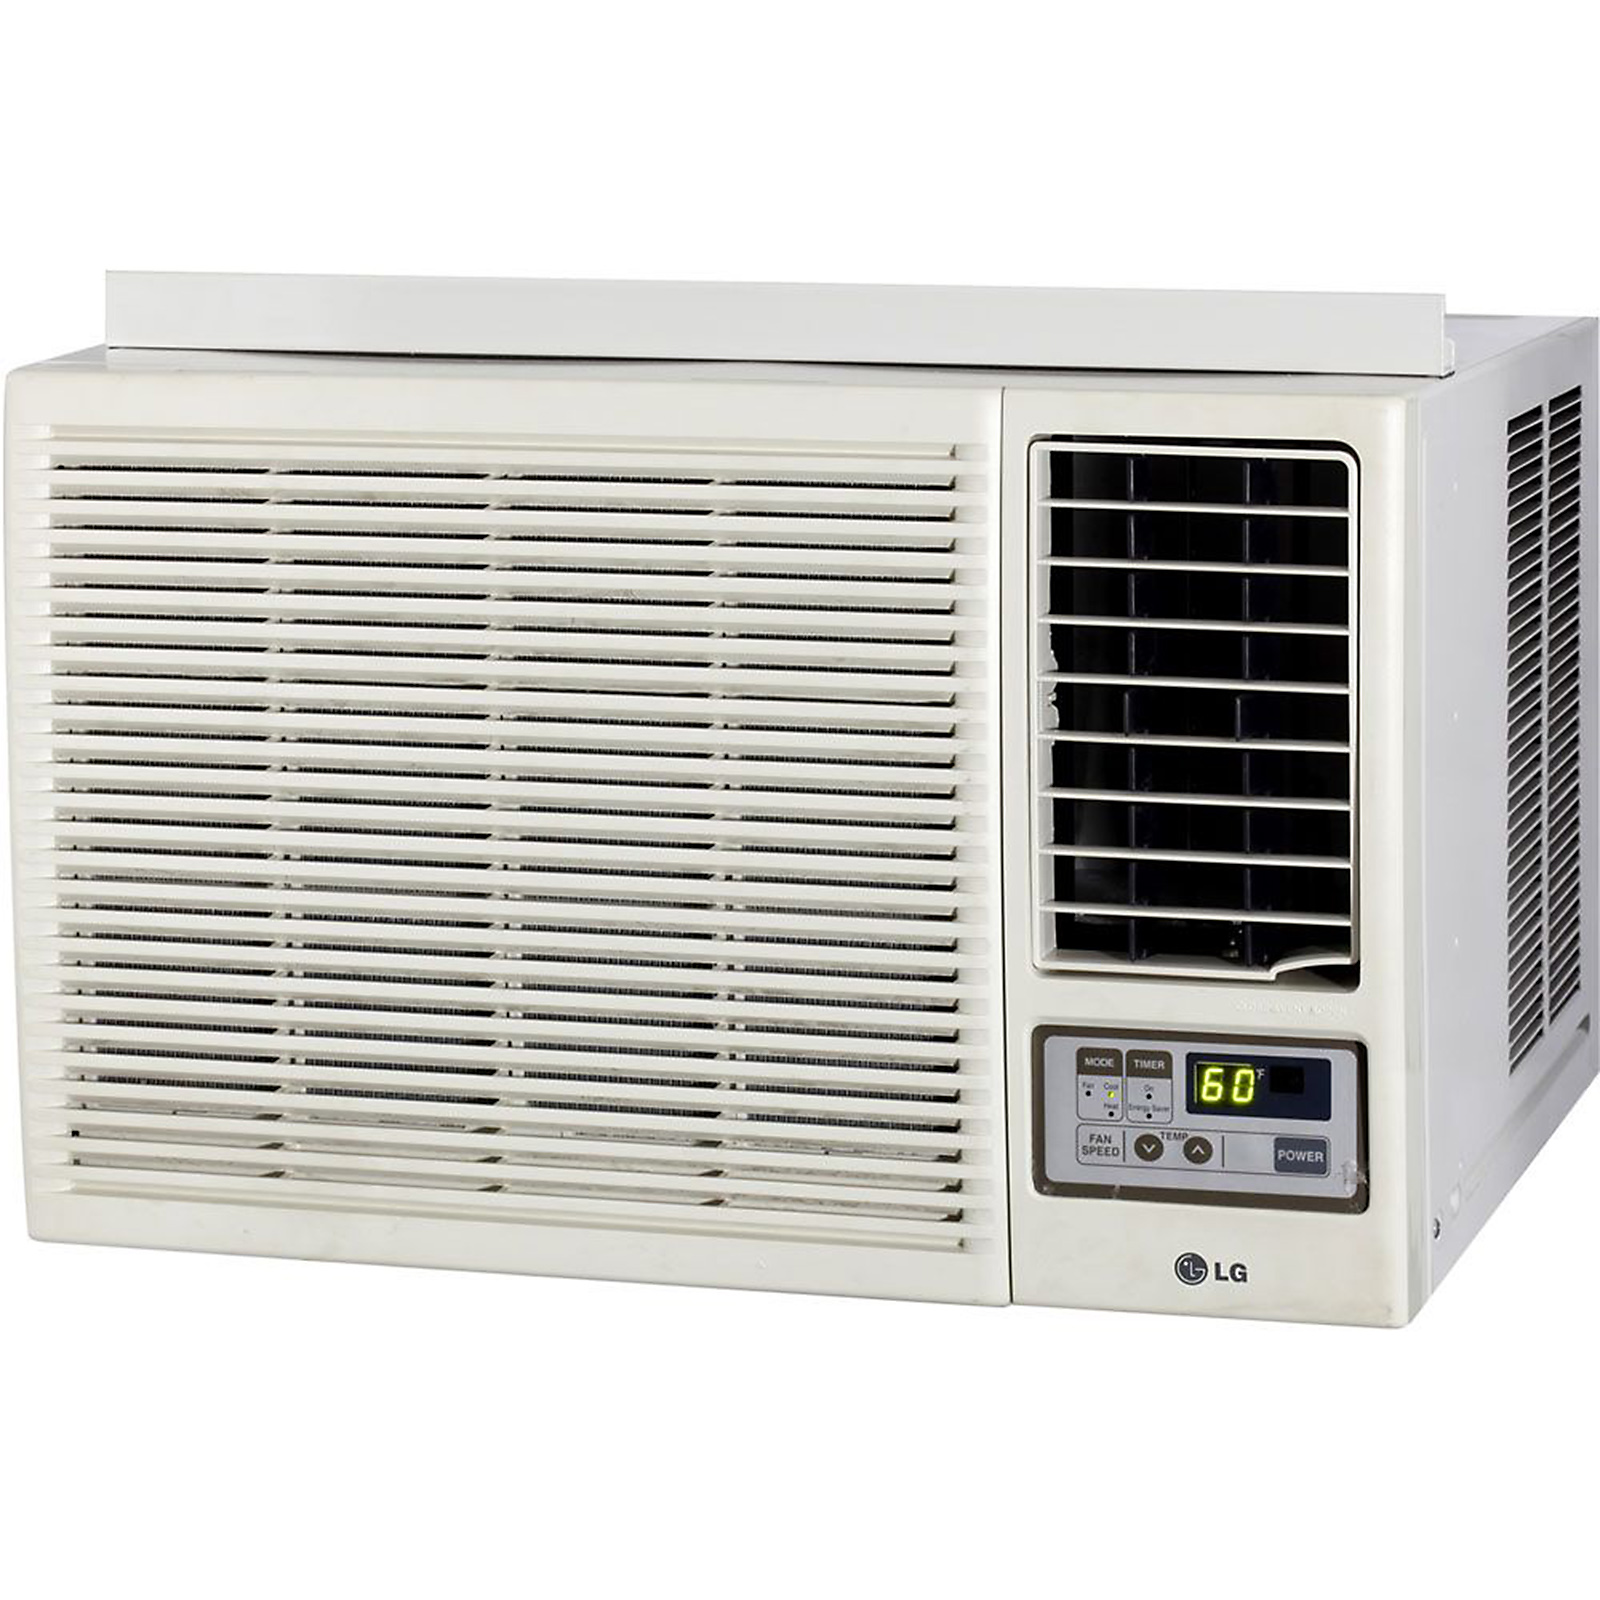 LG Electronics 7,000 BTU Window-Mounted Air Conditioner with Supplemental Heat and Remote Control (115 volts)